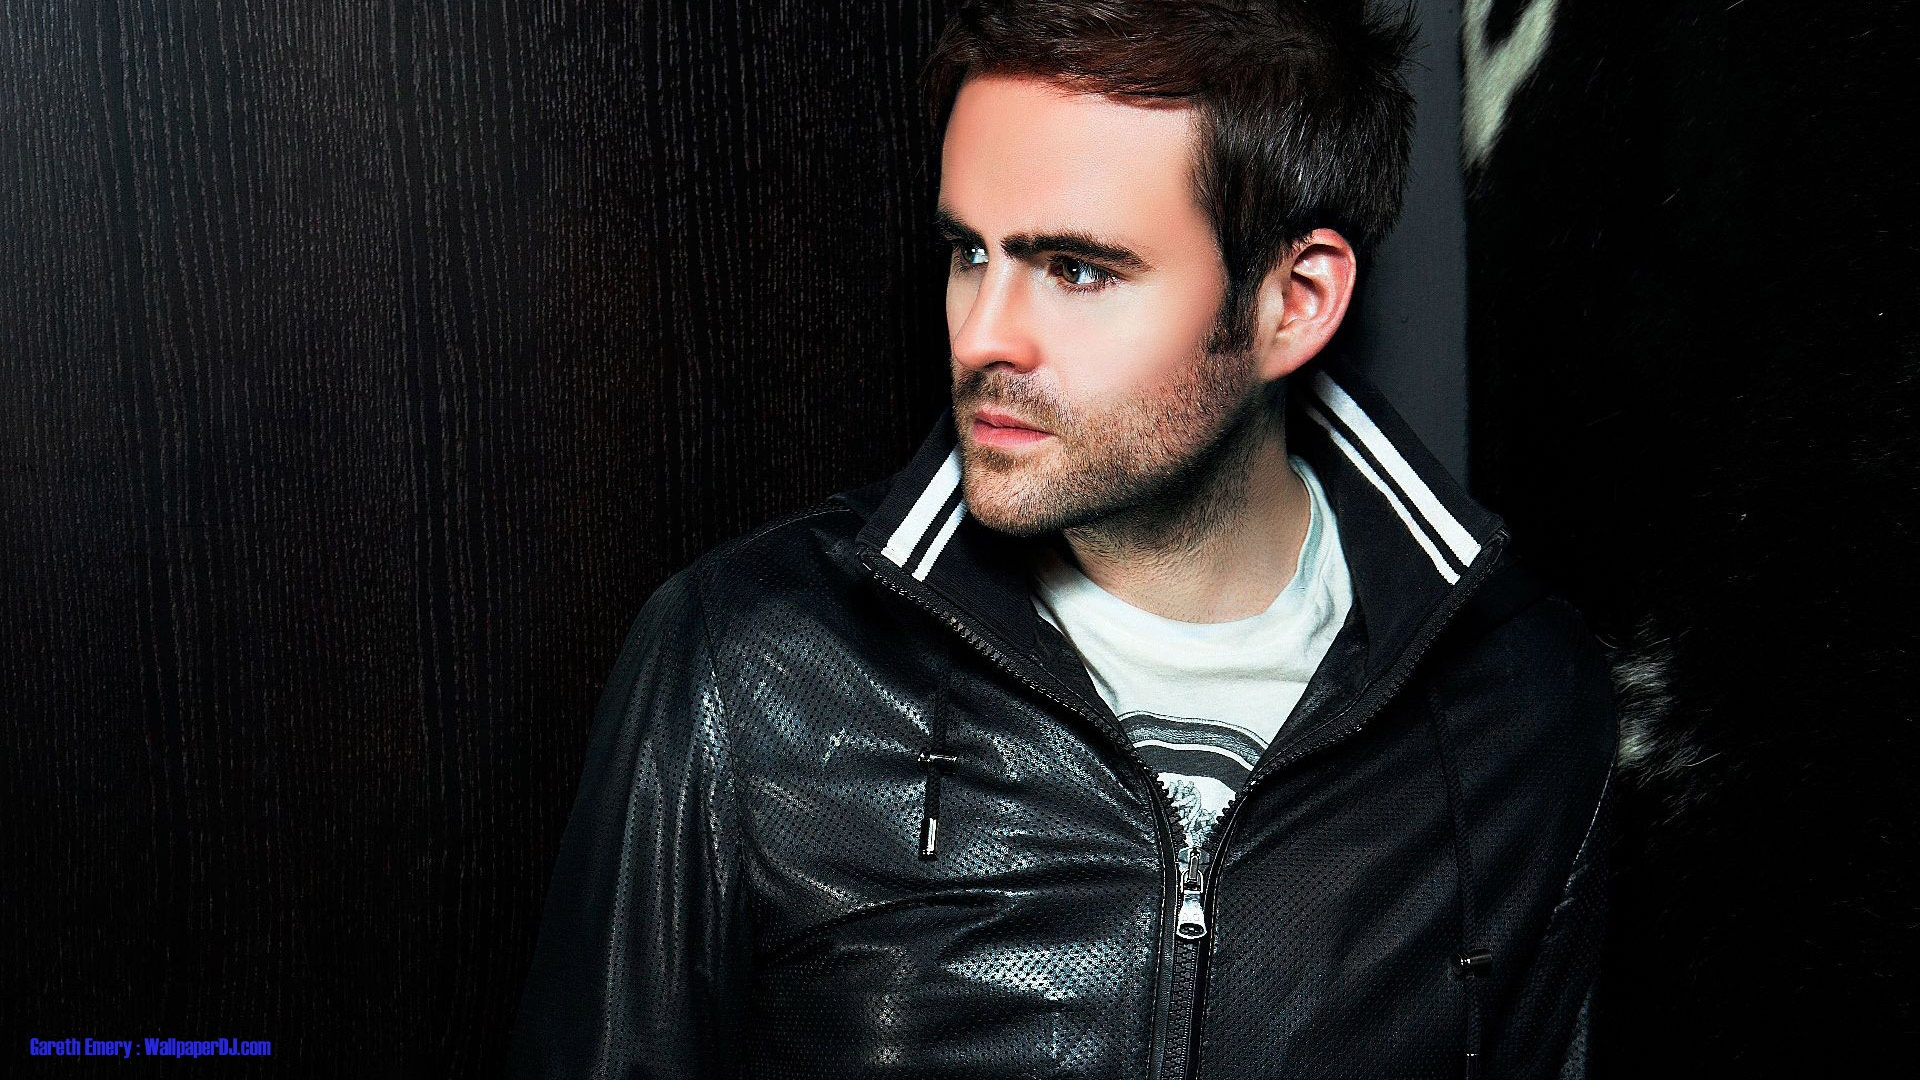 Gareth Emery HD and Wide Wallpapers